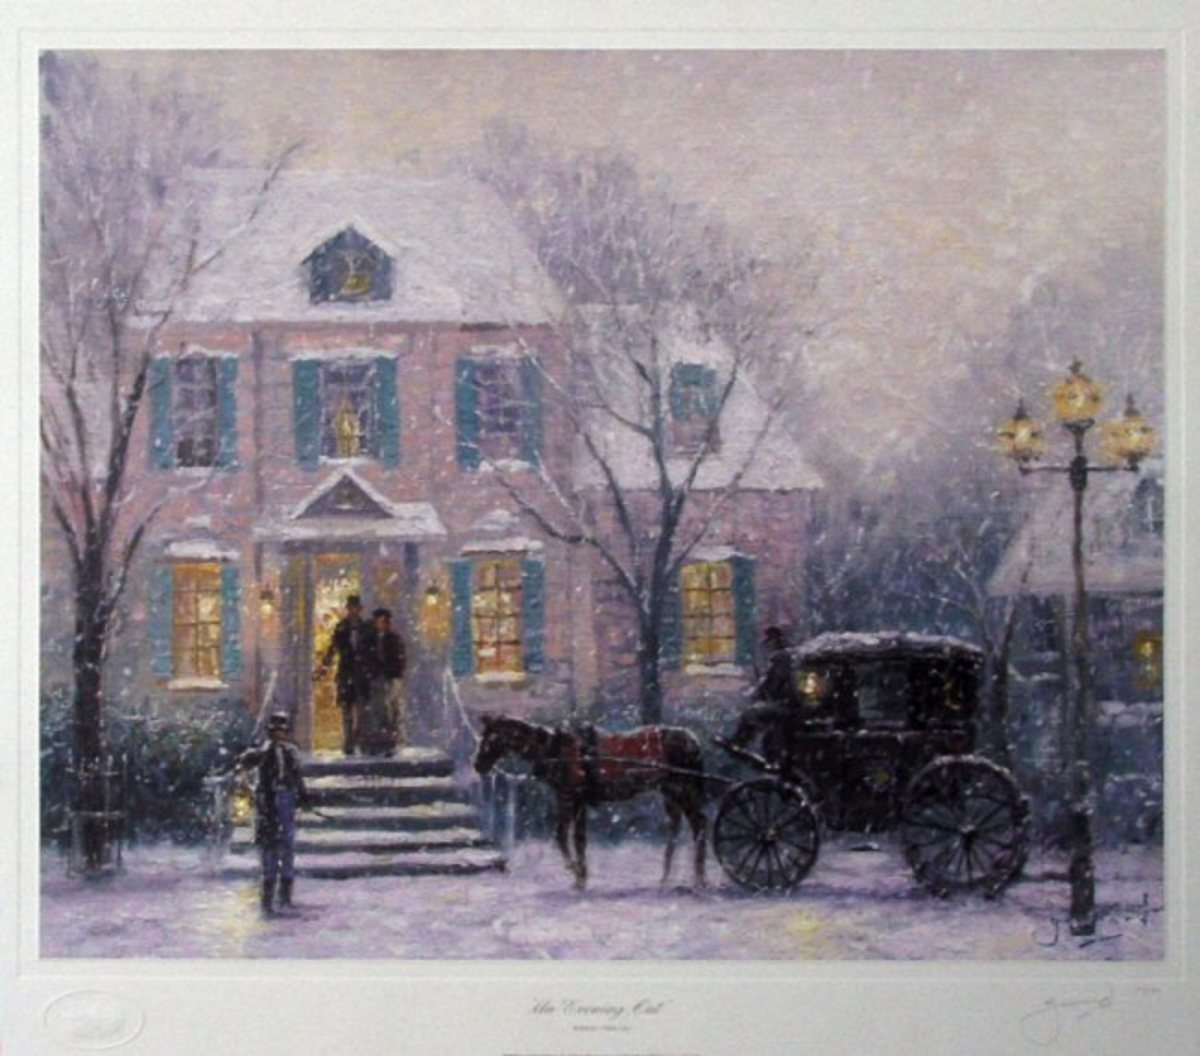 An Evening Out by Robert Girrard (Thomas Kinkade)